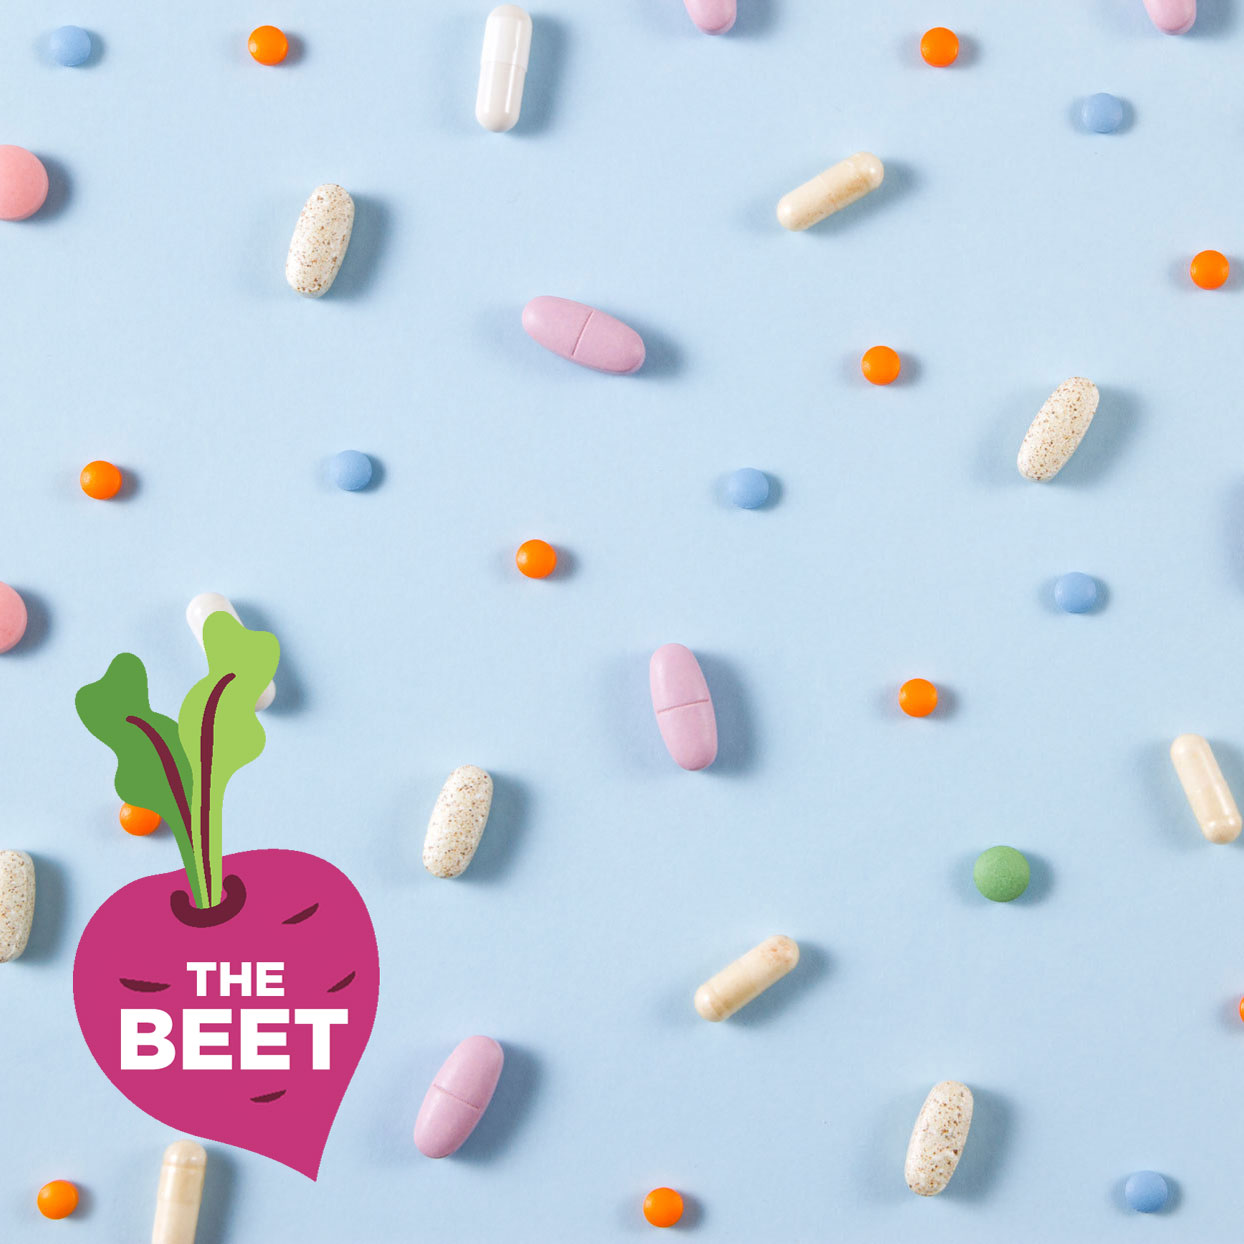 The Beet - multivitamins / supplements